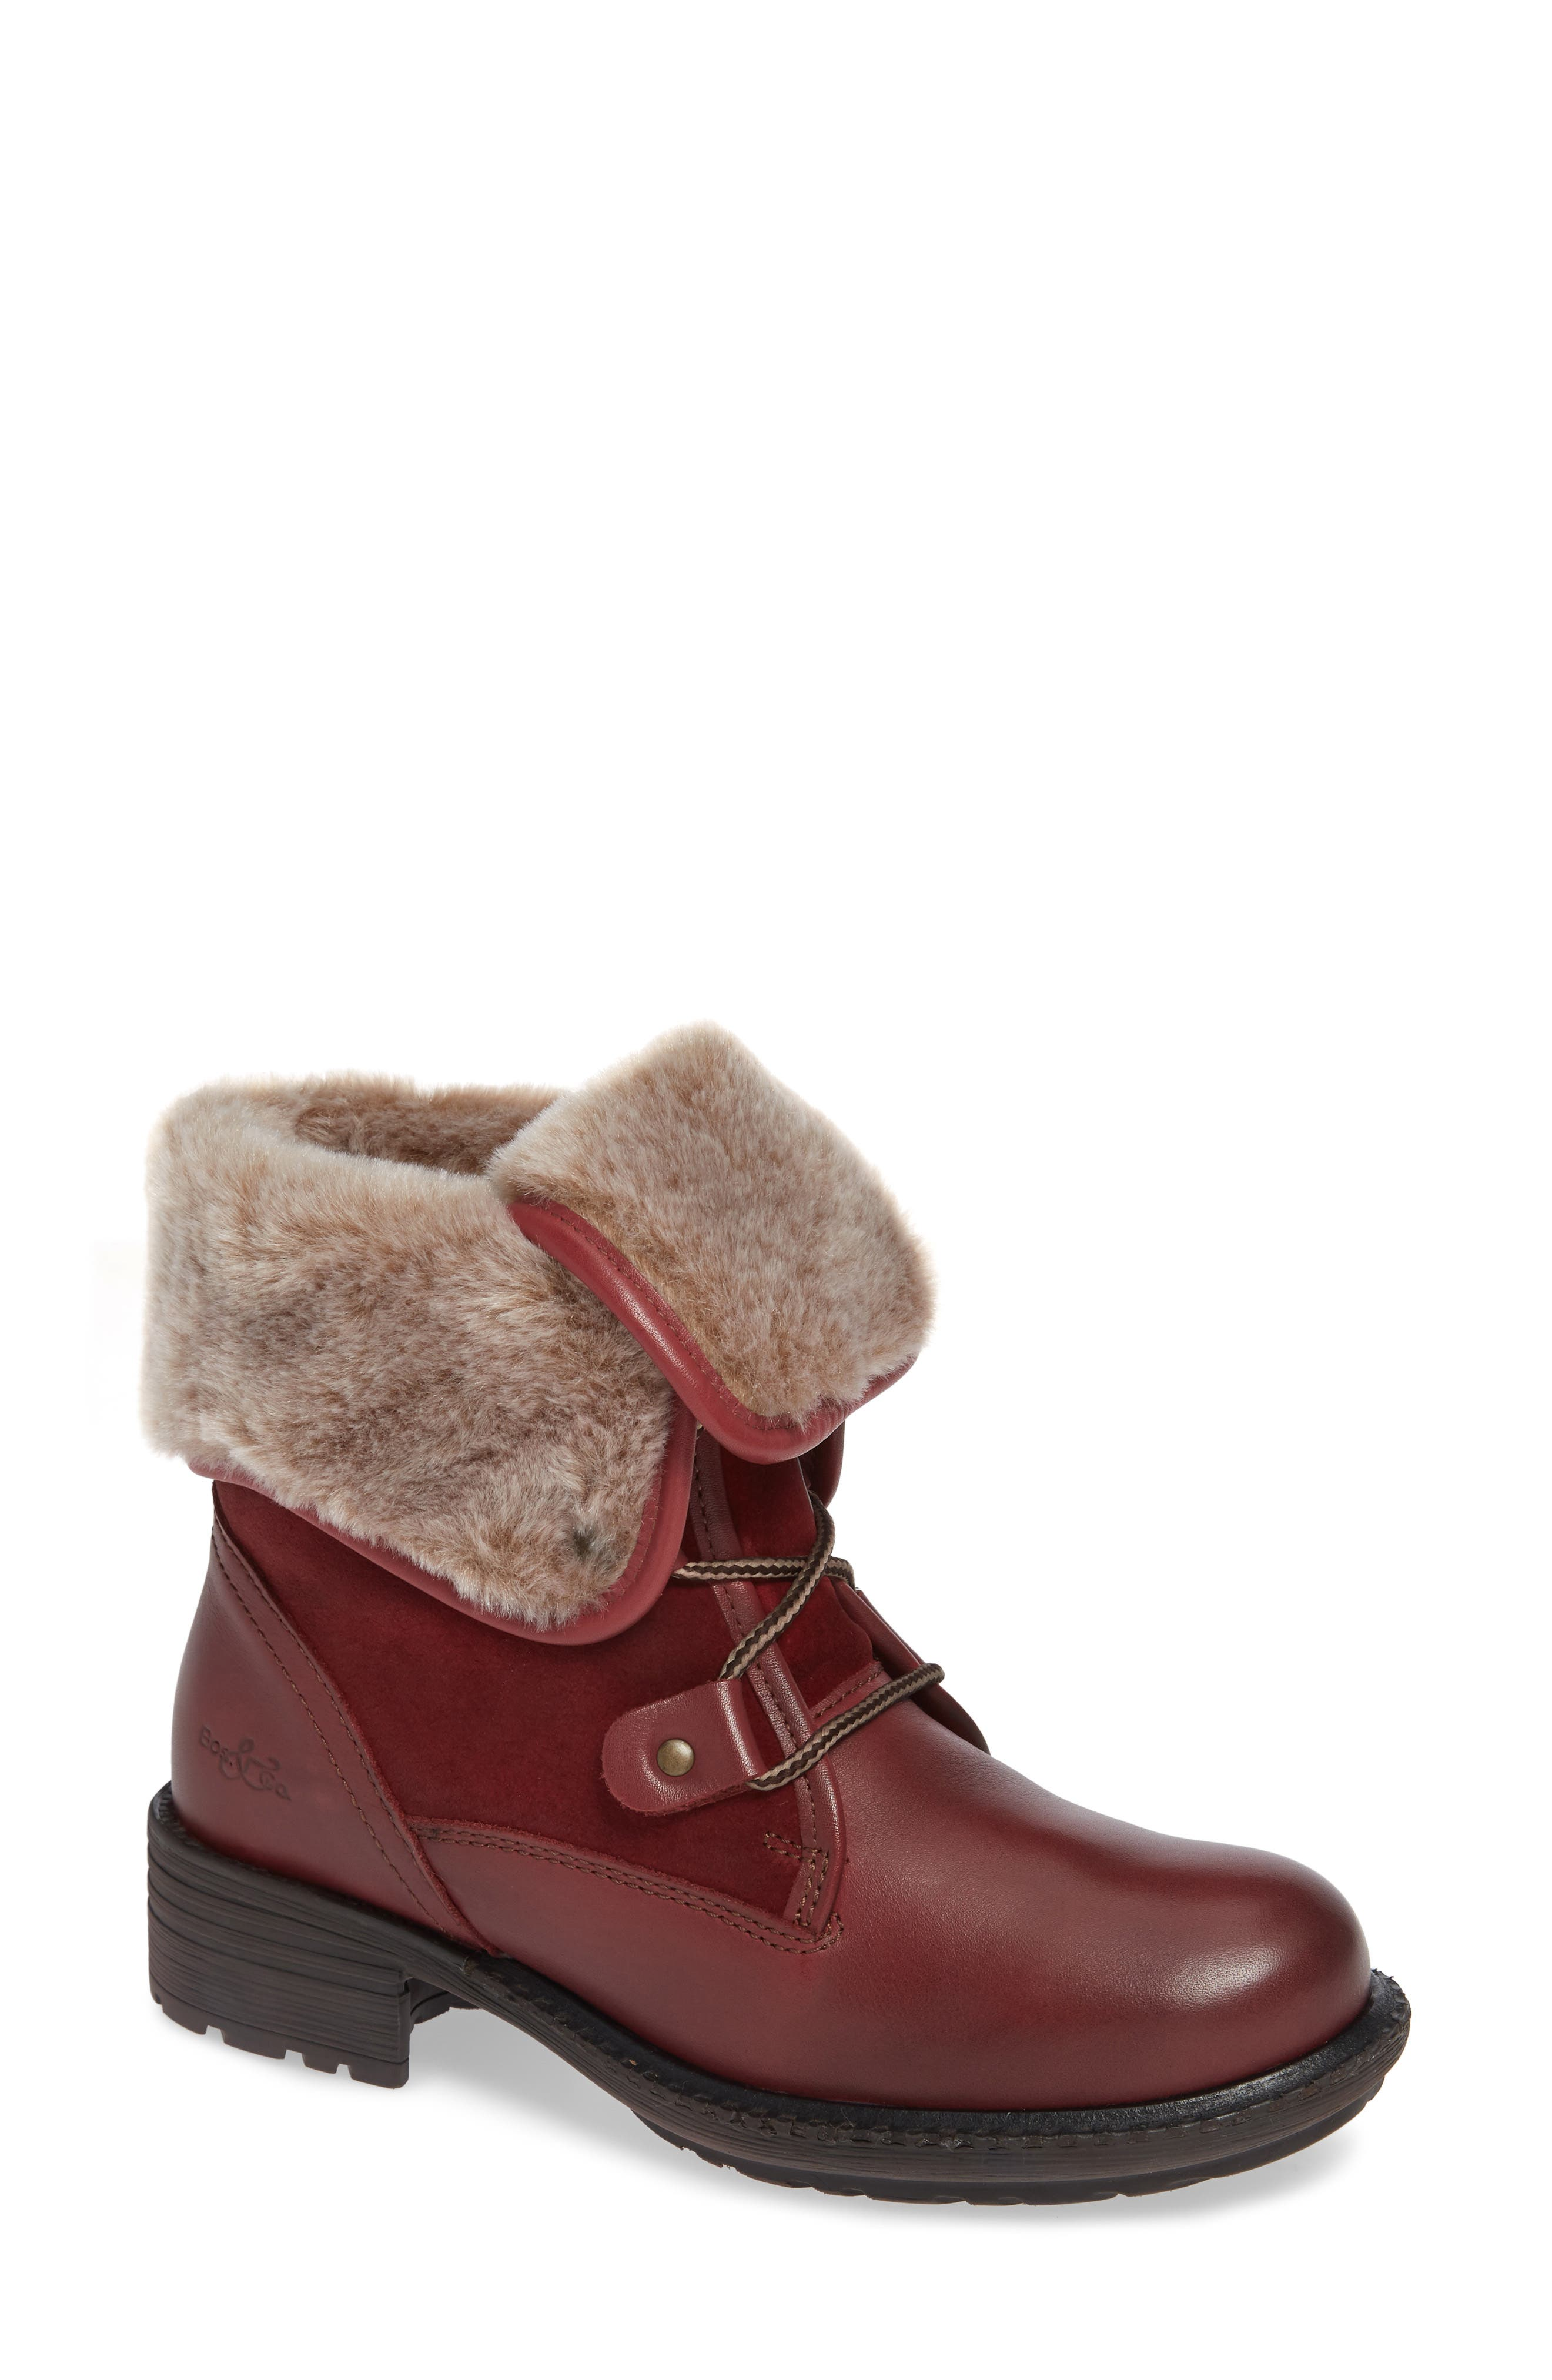 Bos. & Co. Springfield Waterproof Winter Boot - Red